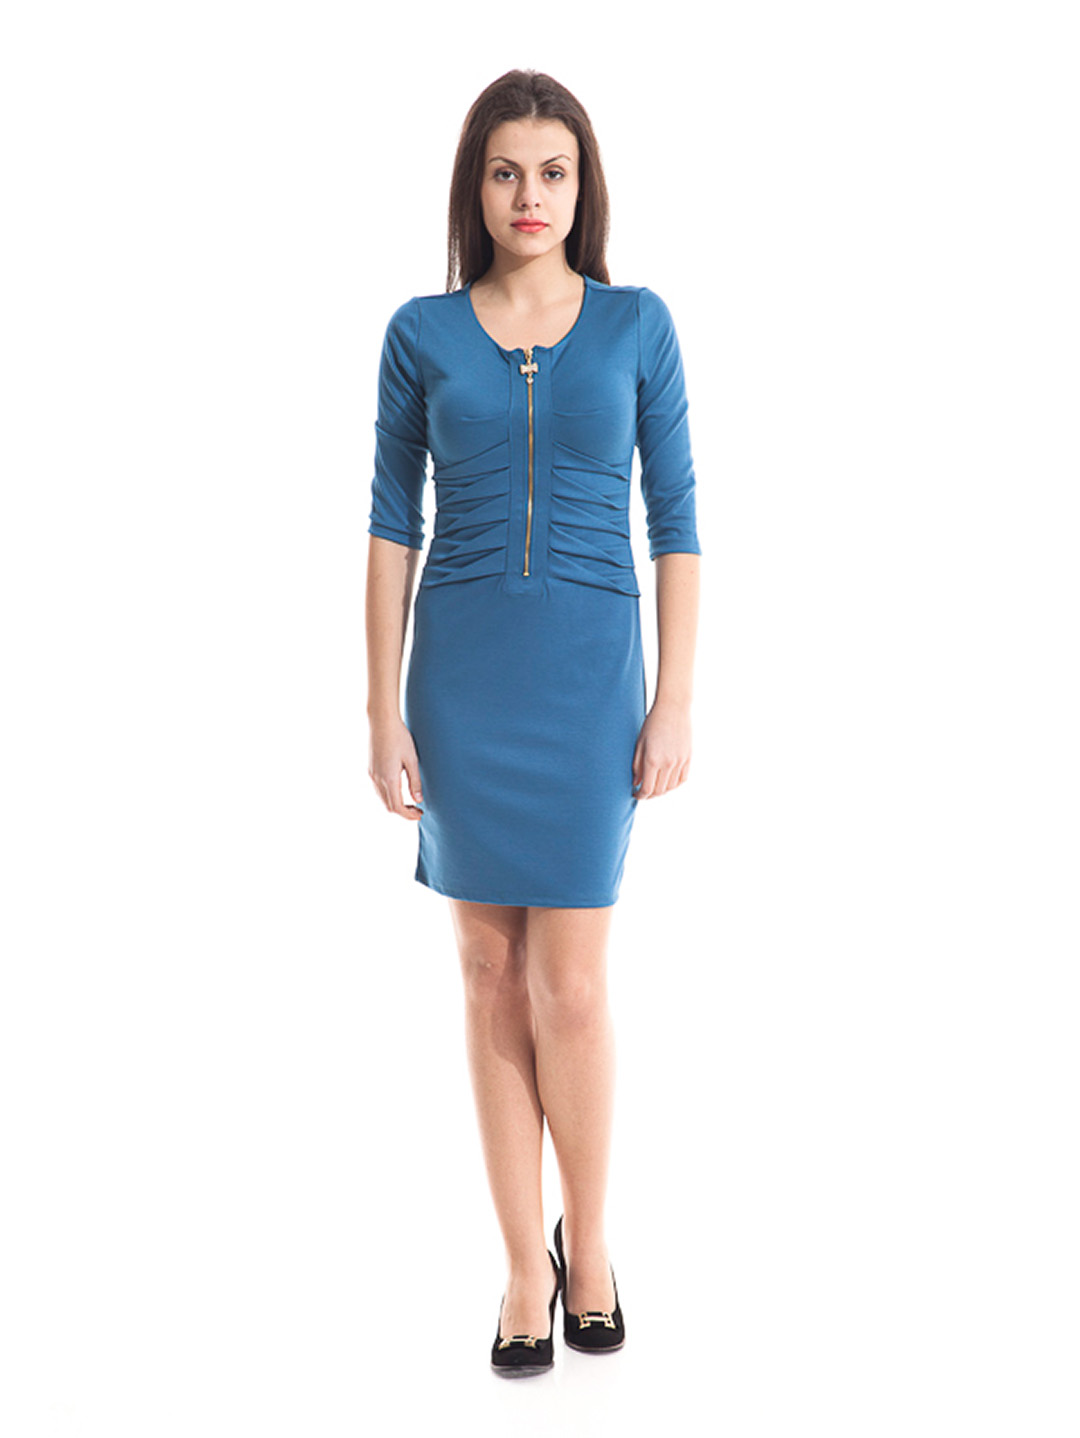 Office Party Dresses - Eligent Prom Dresses